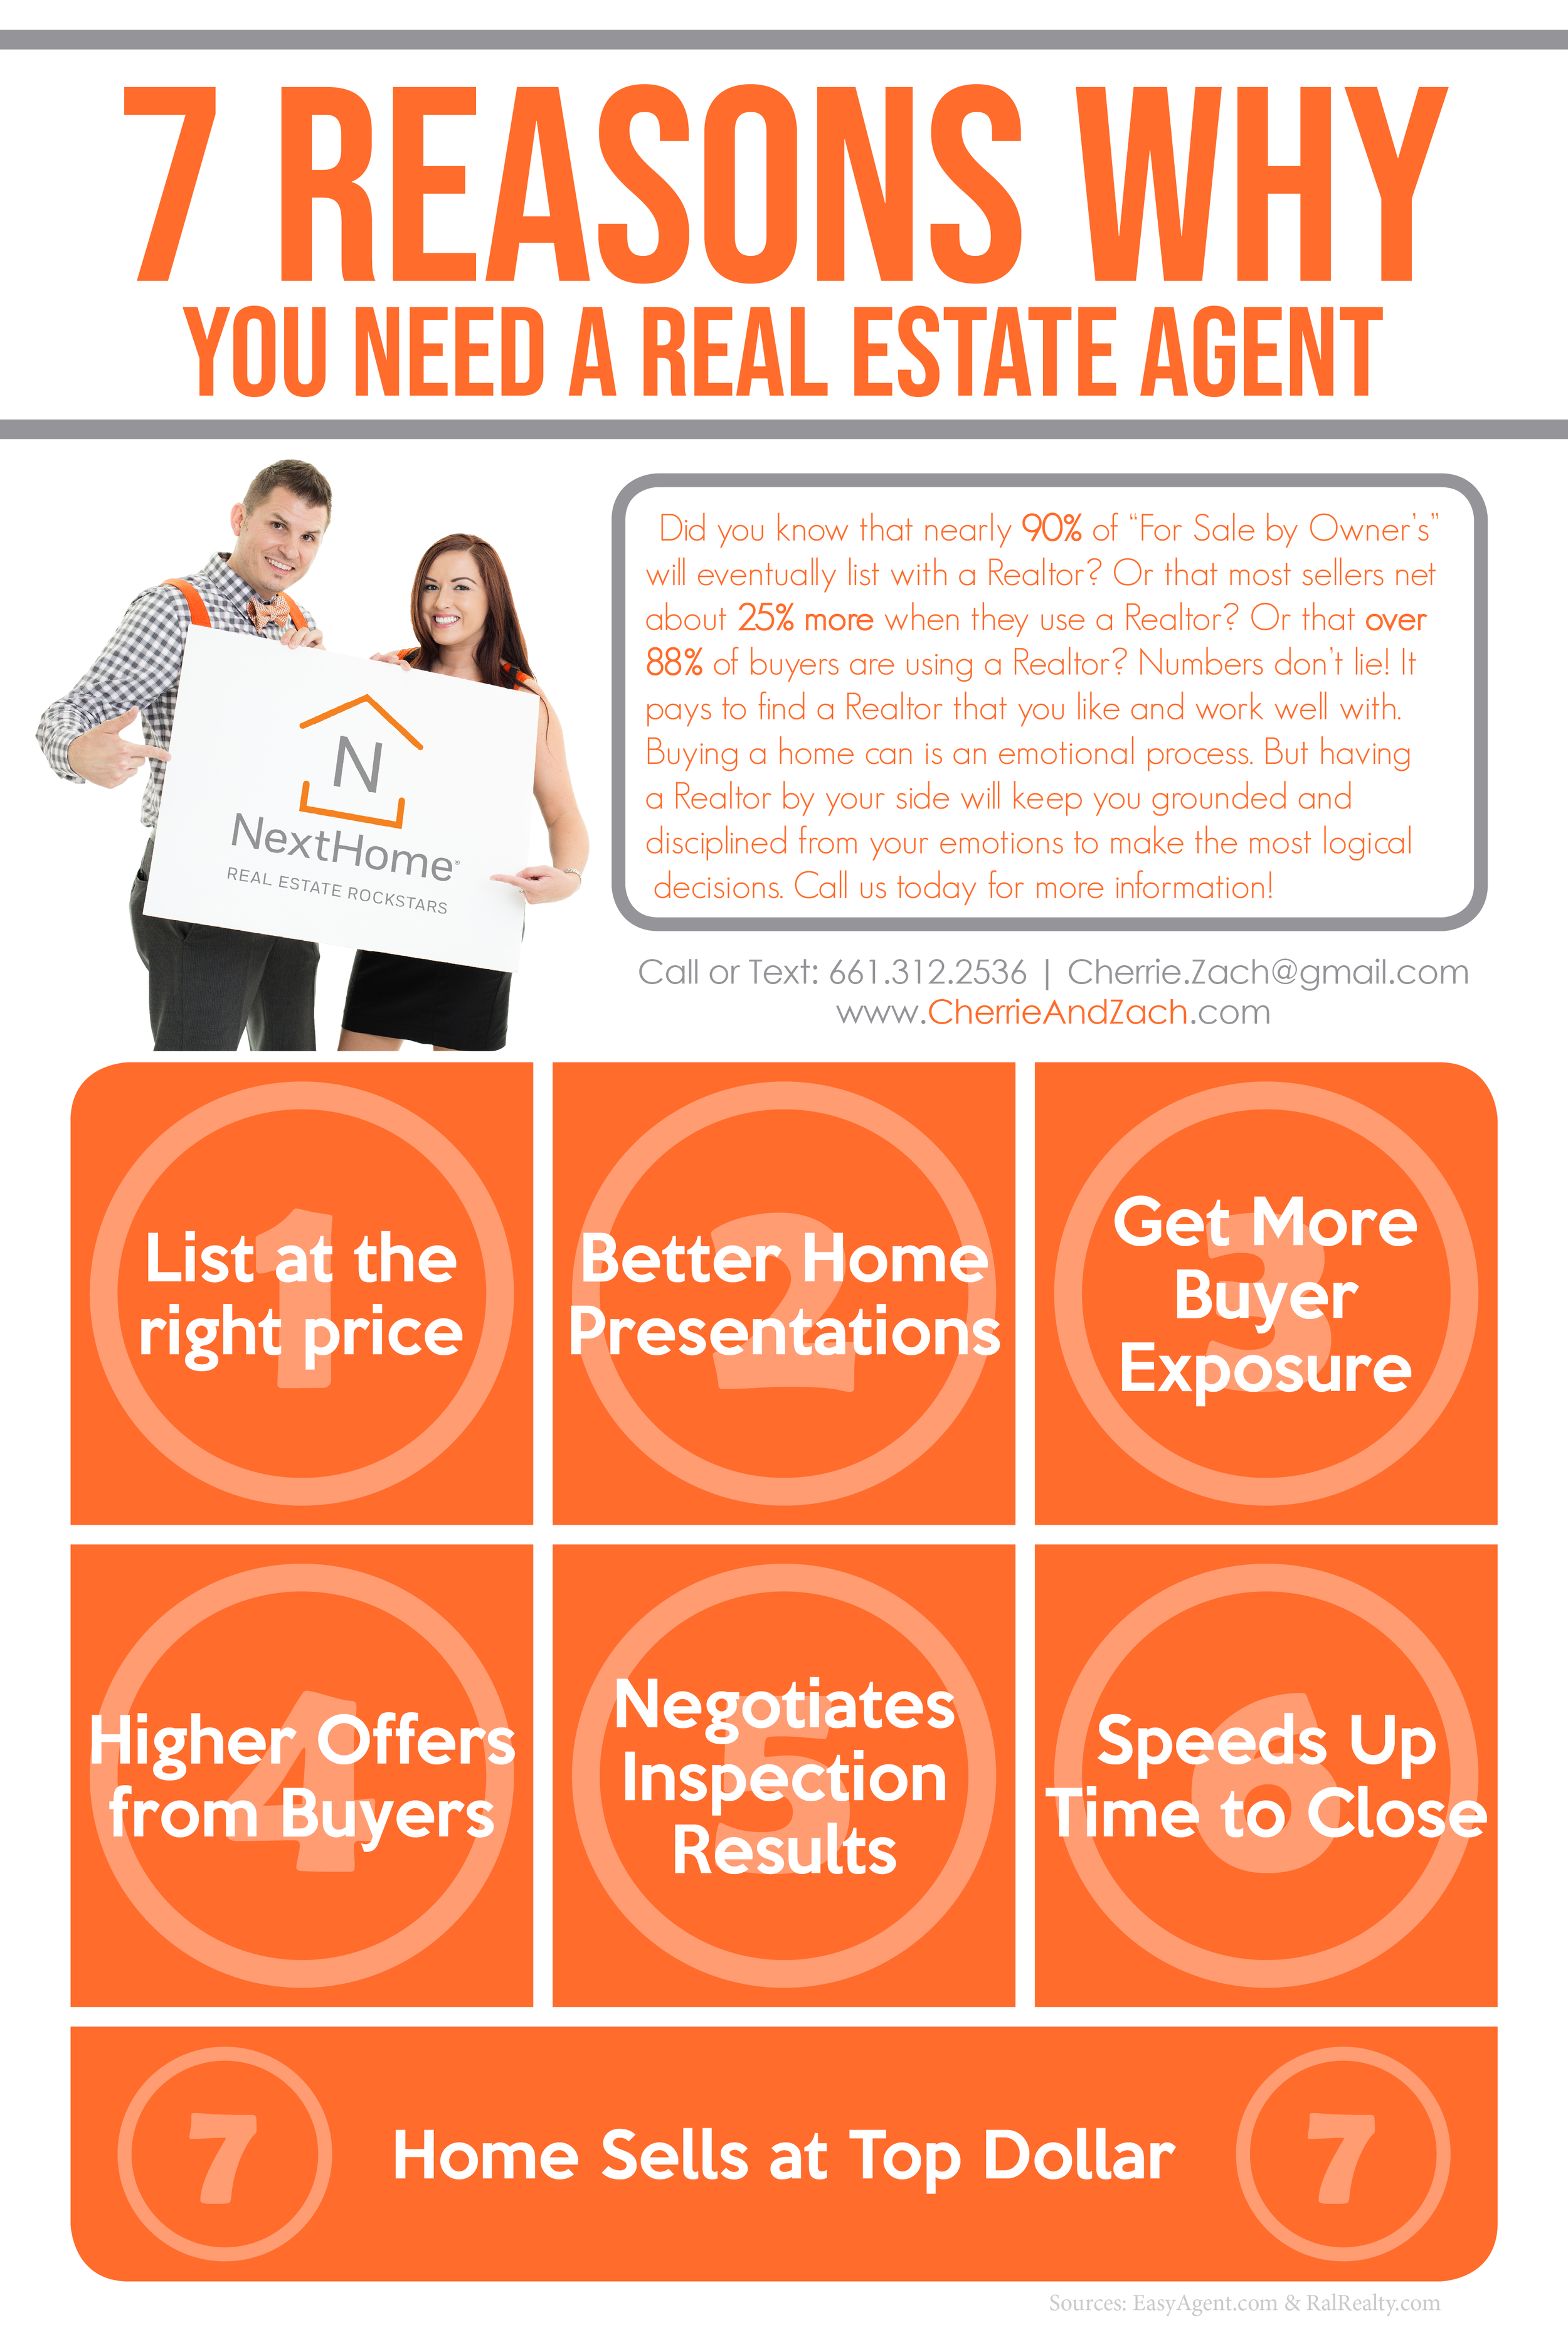 Santa-Clarita-Realtor-Velancia-Cherrie-Zach-Real-Estate-Rockstars-NextHome-7-Reasons-Why-You-Need-A-Real-Estate-Agent.png